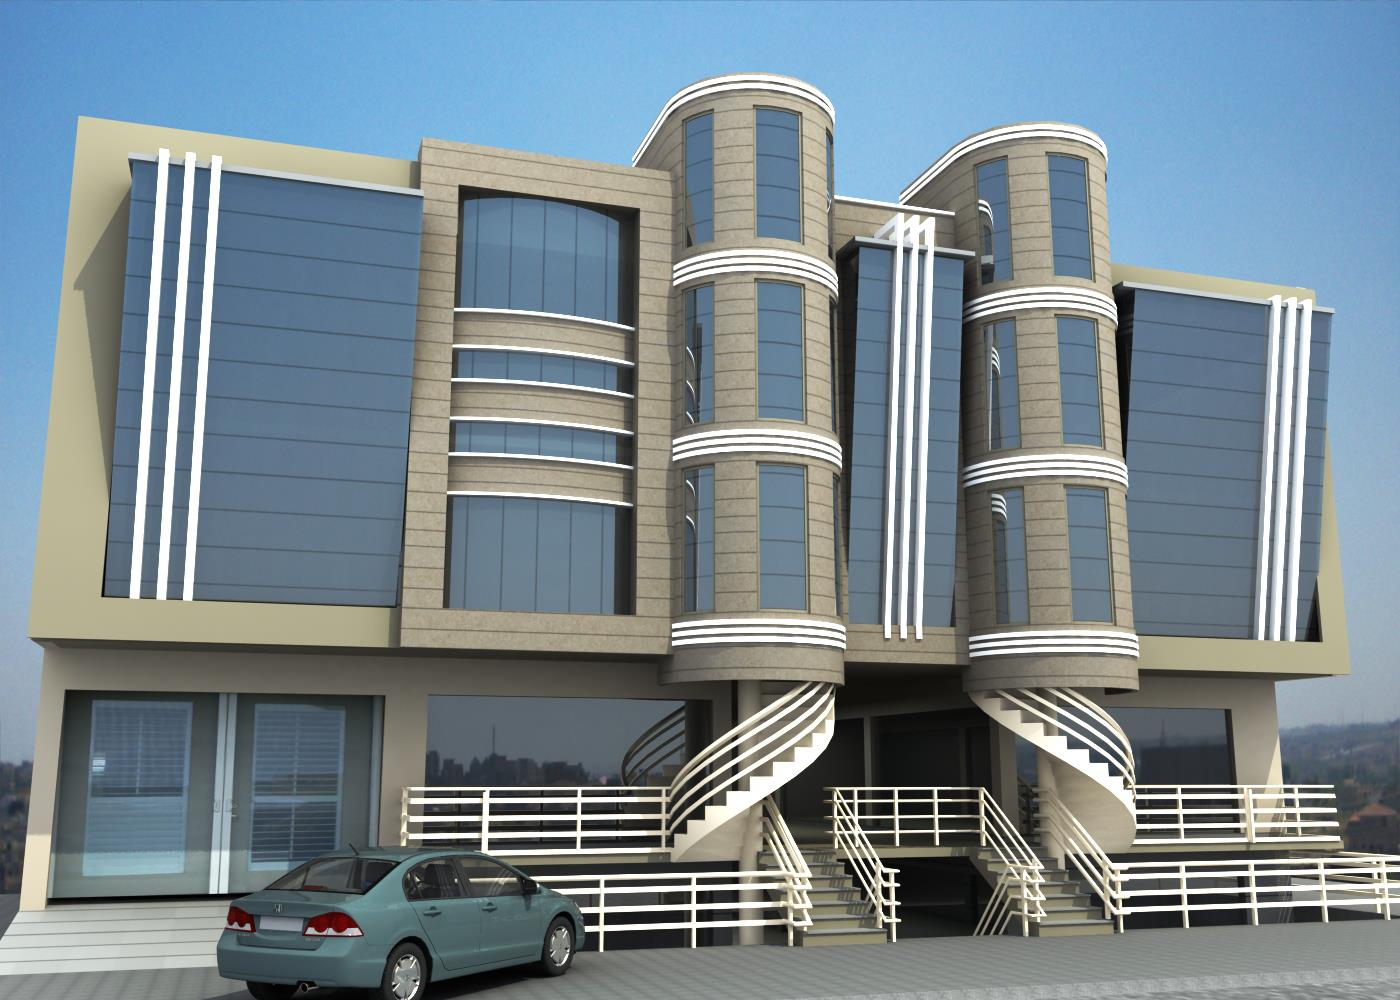 Commercial buildng design 3d architecture visualizations 3d building design